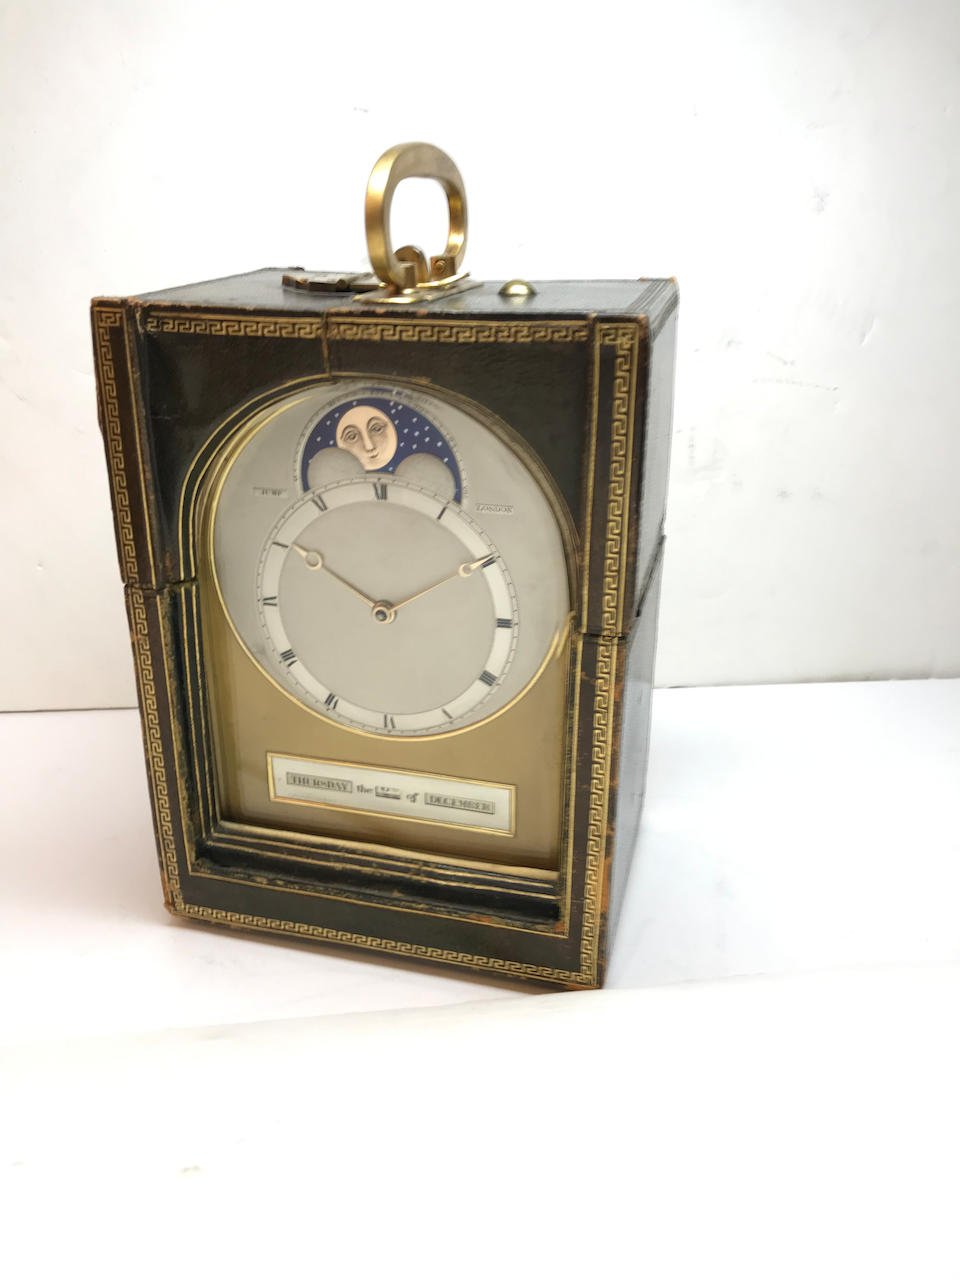 A rare silver mounted shagreen humpback traveling clock with perpetual calendar and moon phase Jump, London, circa 1900